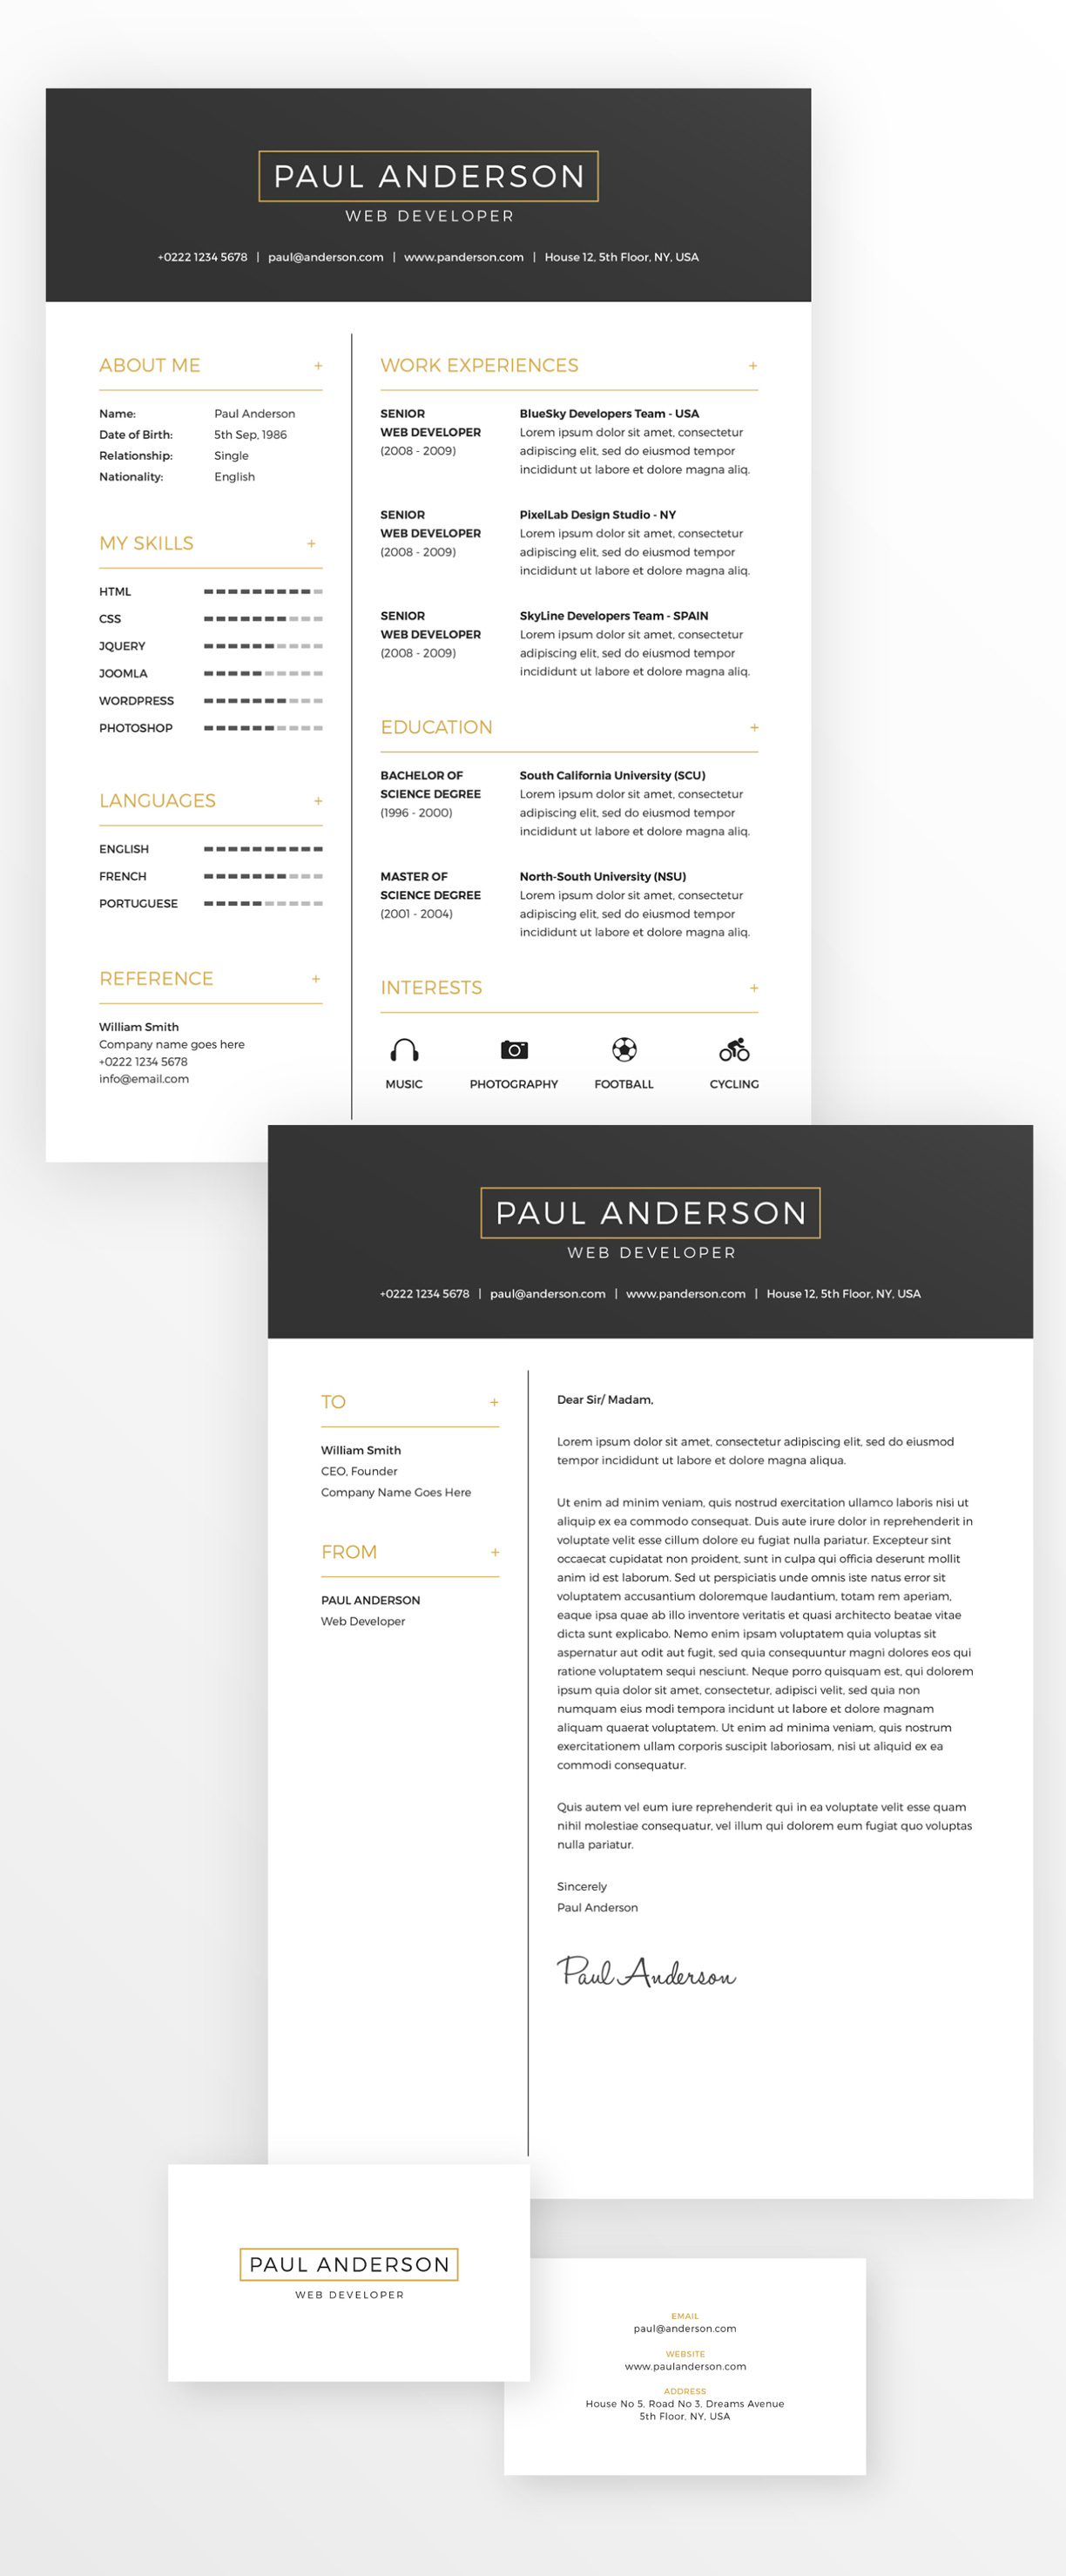 Free Minimal Resume (CV) Design Template With Cover Letter & Business Card Design PSD File (1)